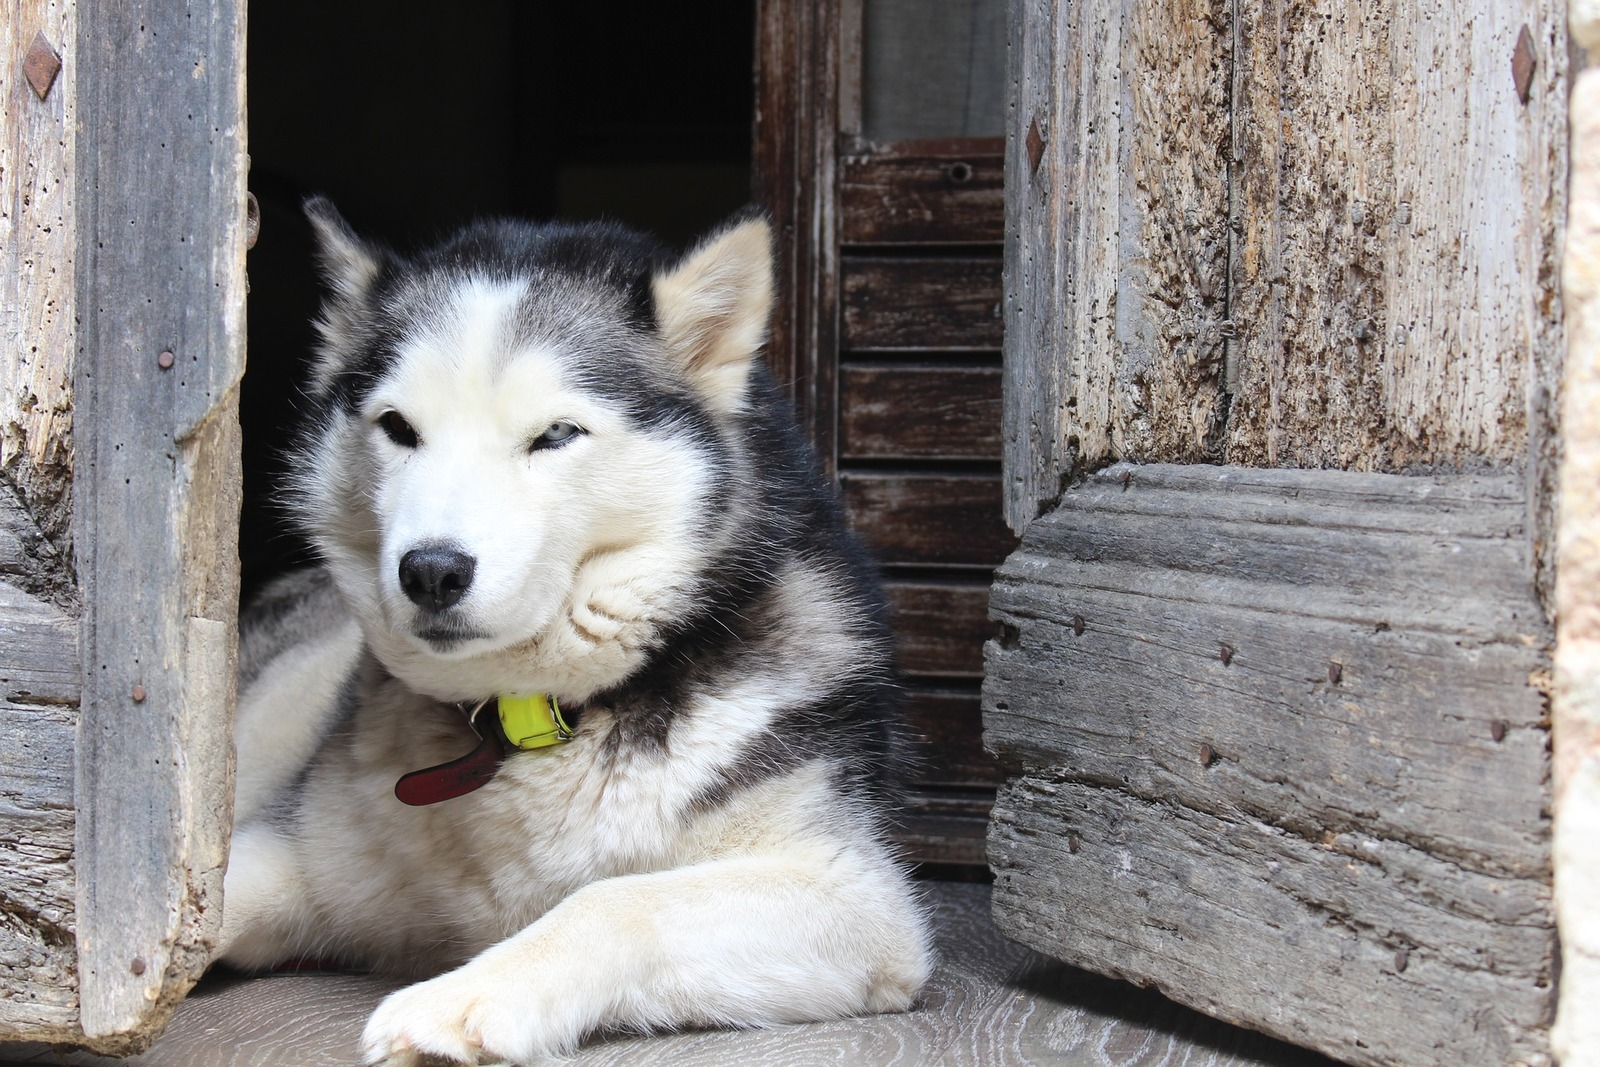 The Shaggy Husky From The Harsh Environment Of Siberia Is Not For